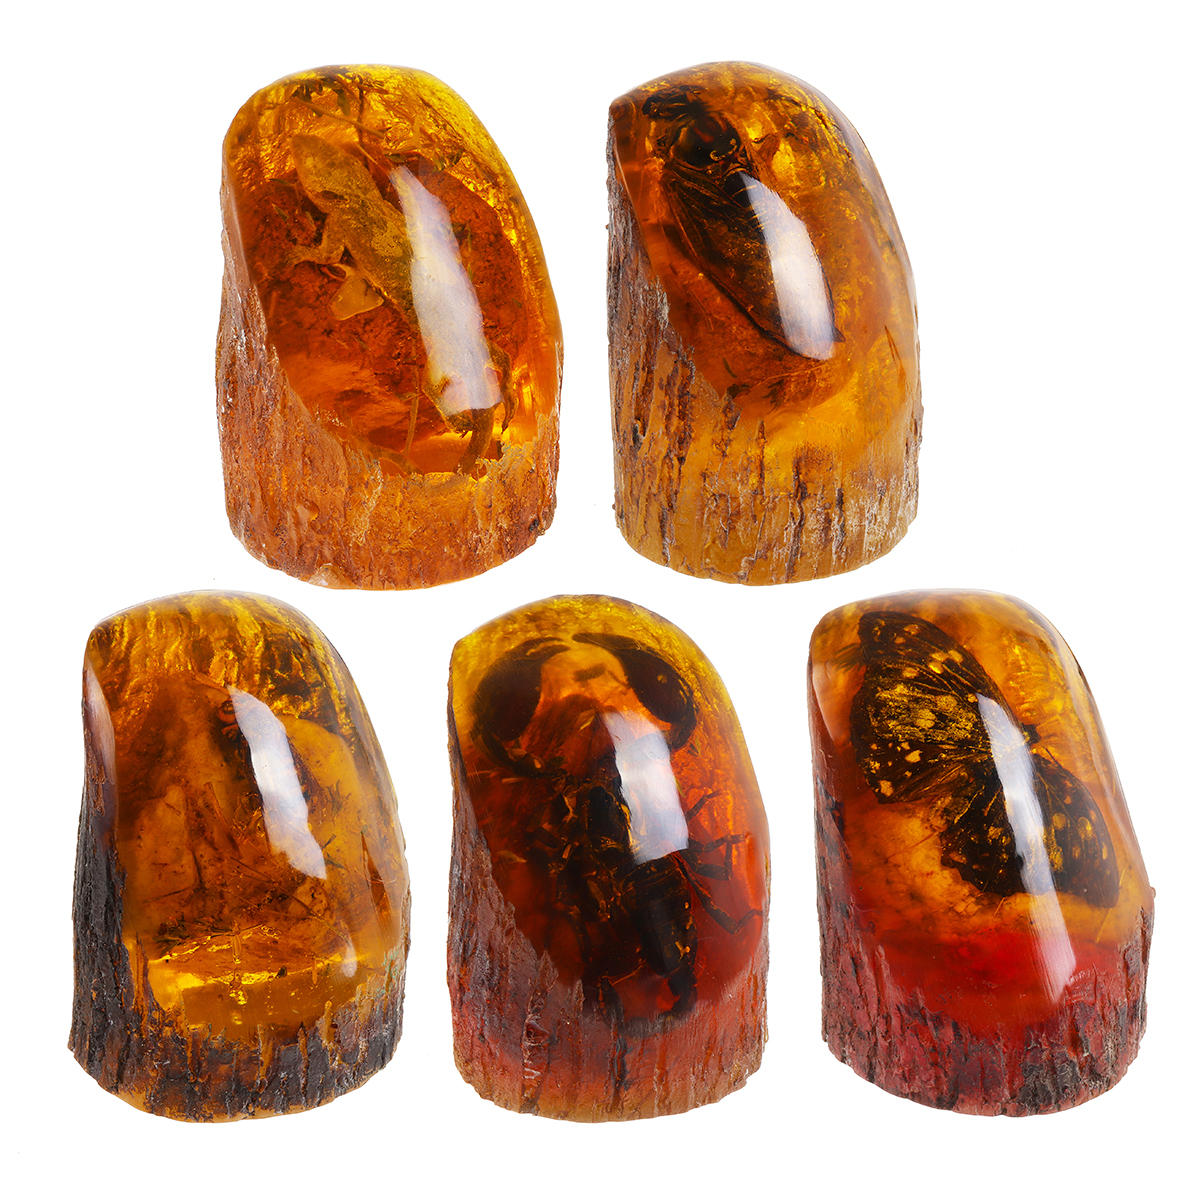 Amber King Butterfly Amber Fossil True Insect Specimens Decorations Crafts